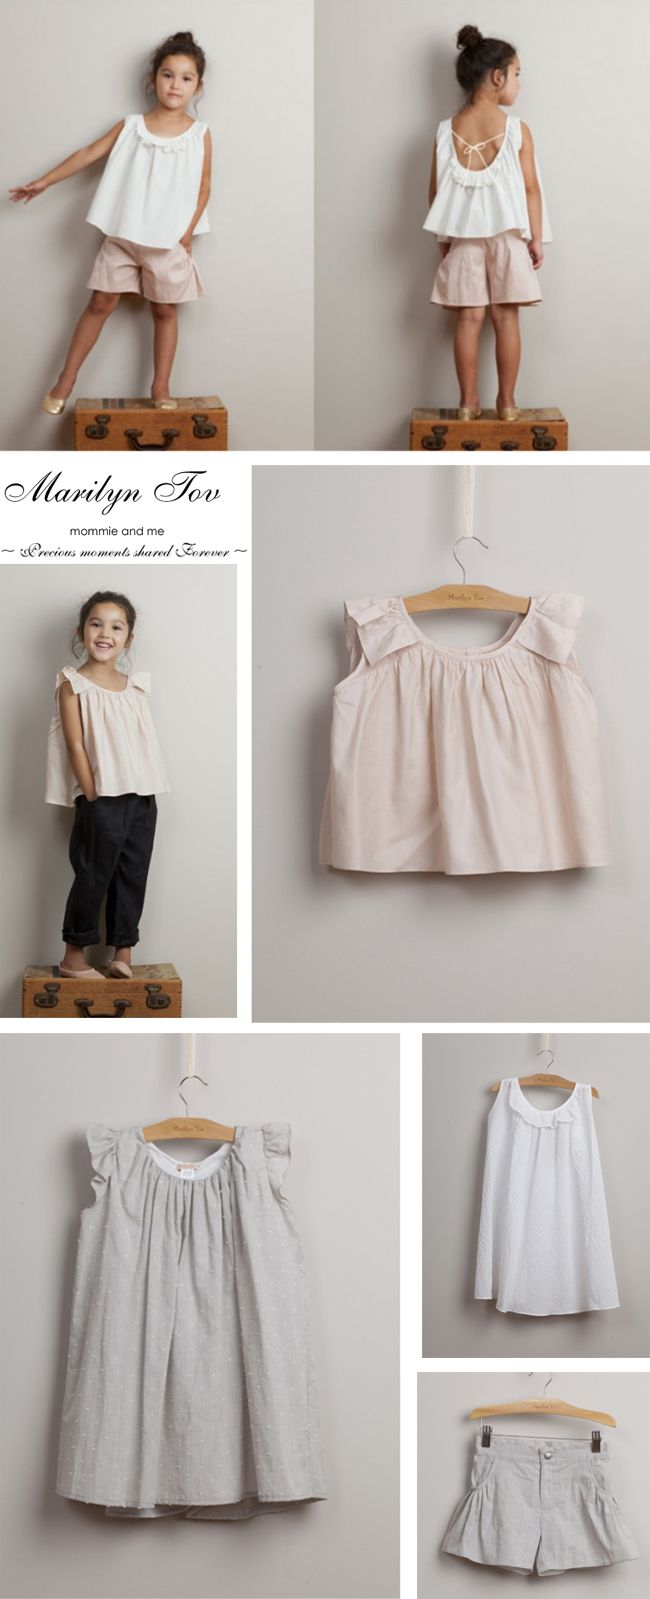 marilyn+tov+mother+and+daughter+outfits-+girls+clothing+summer+2013.jpg 650×1,599 pixels